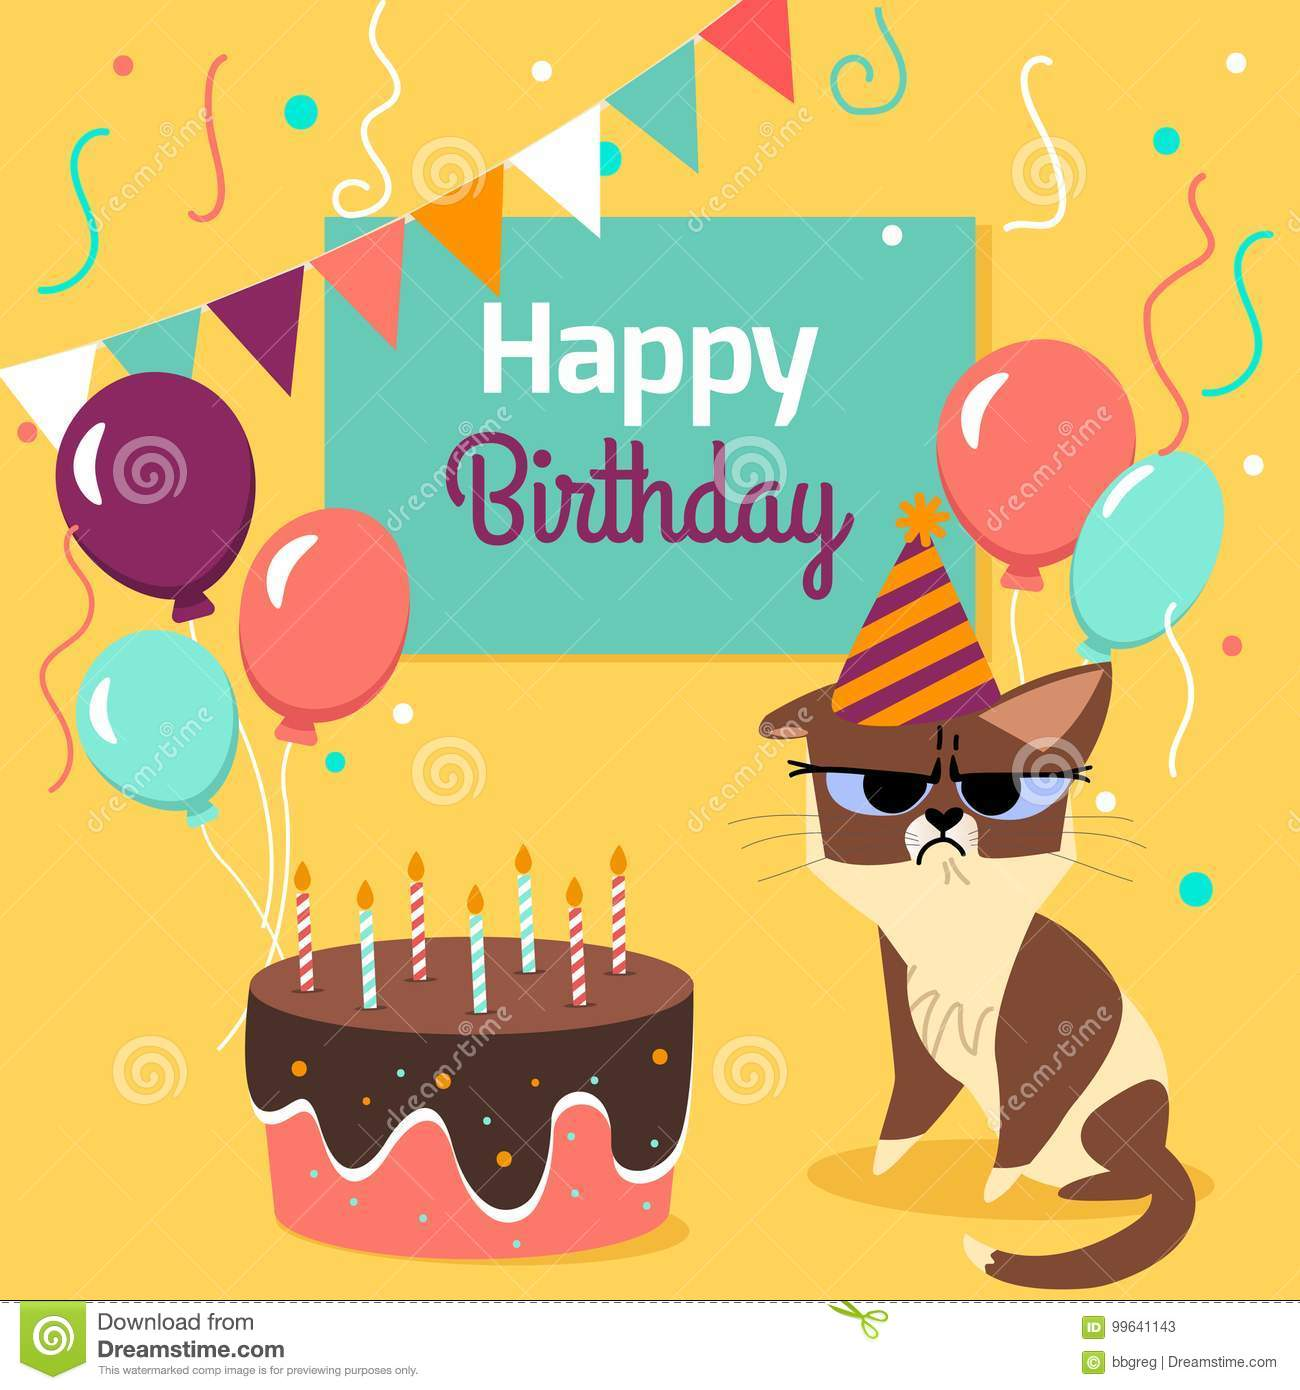 Happy Birthday Card With Funny Grumpy Cat Cake Colorful Balloons On Bright Yellow Background